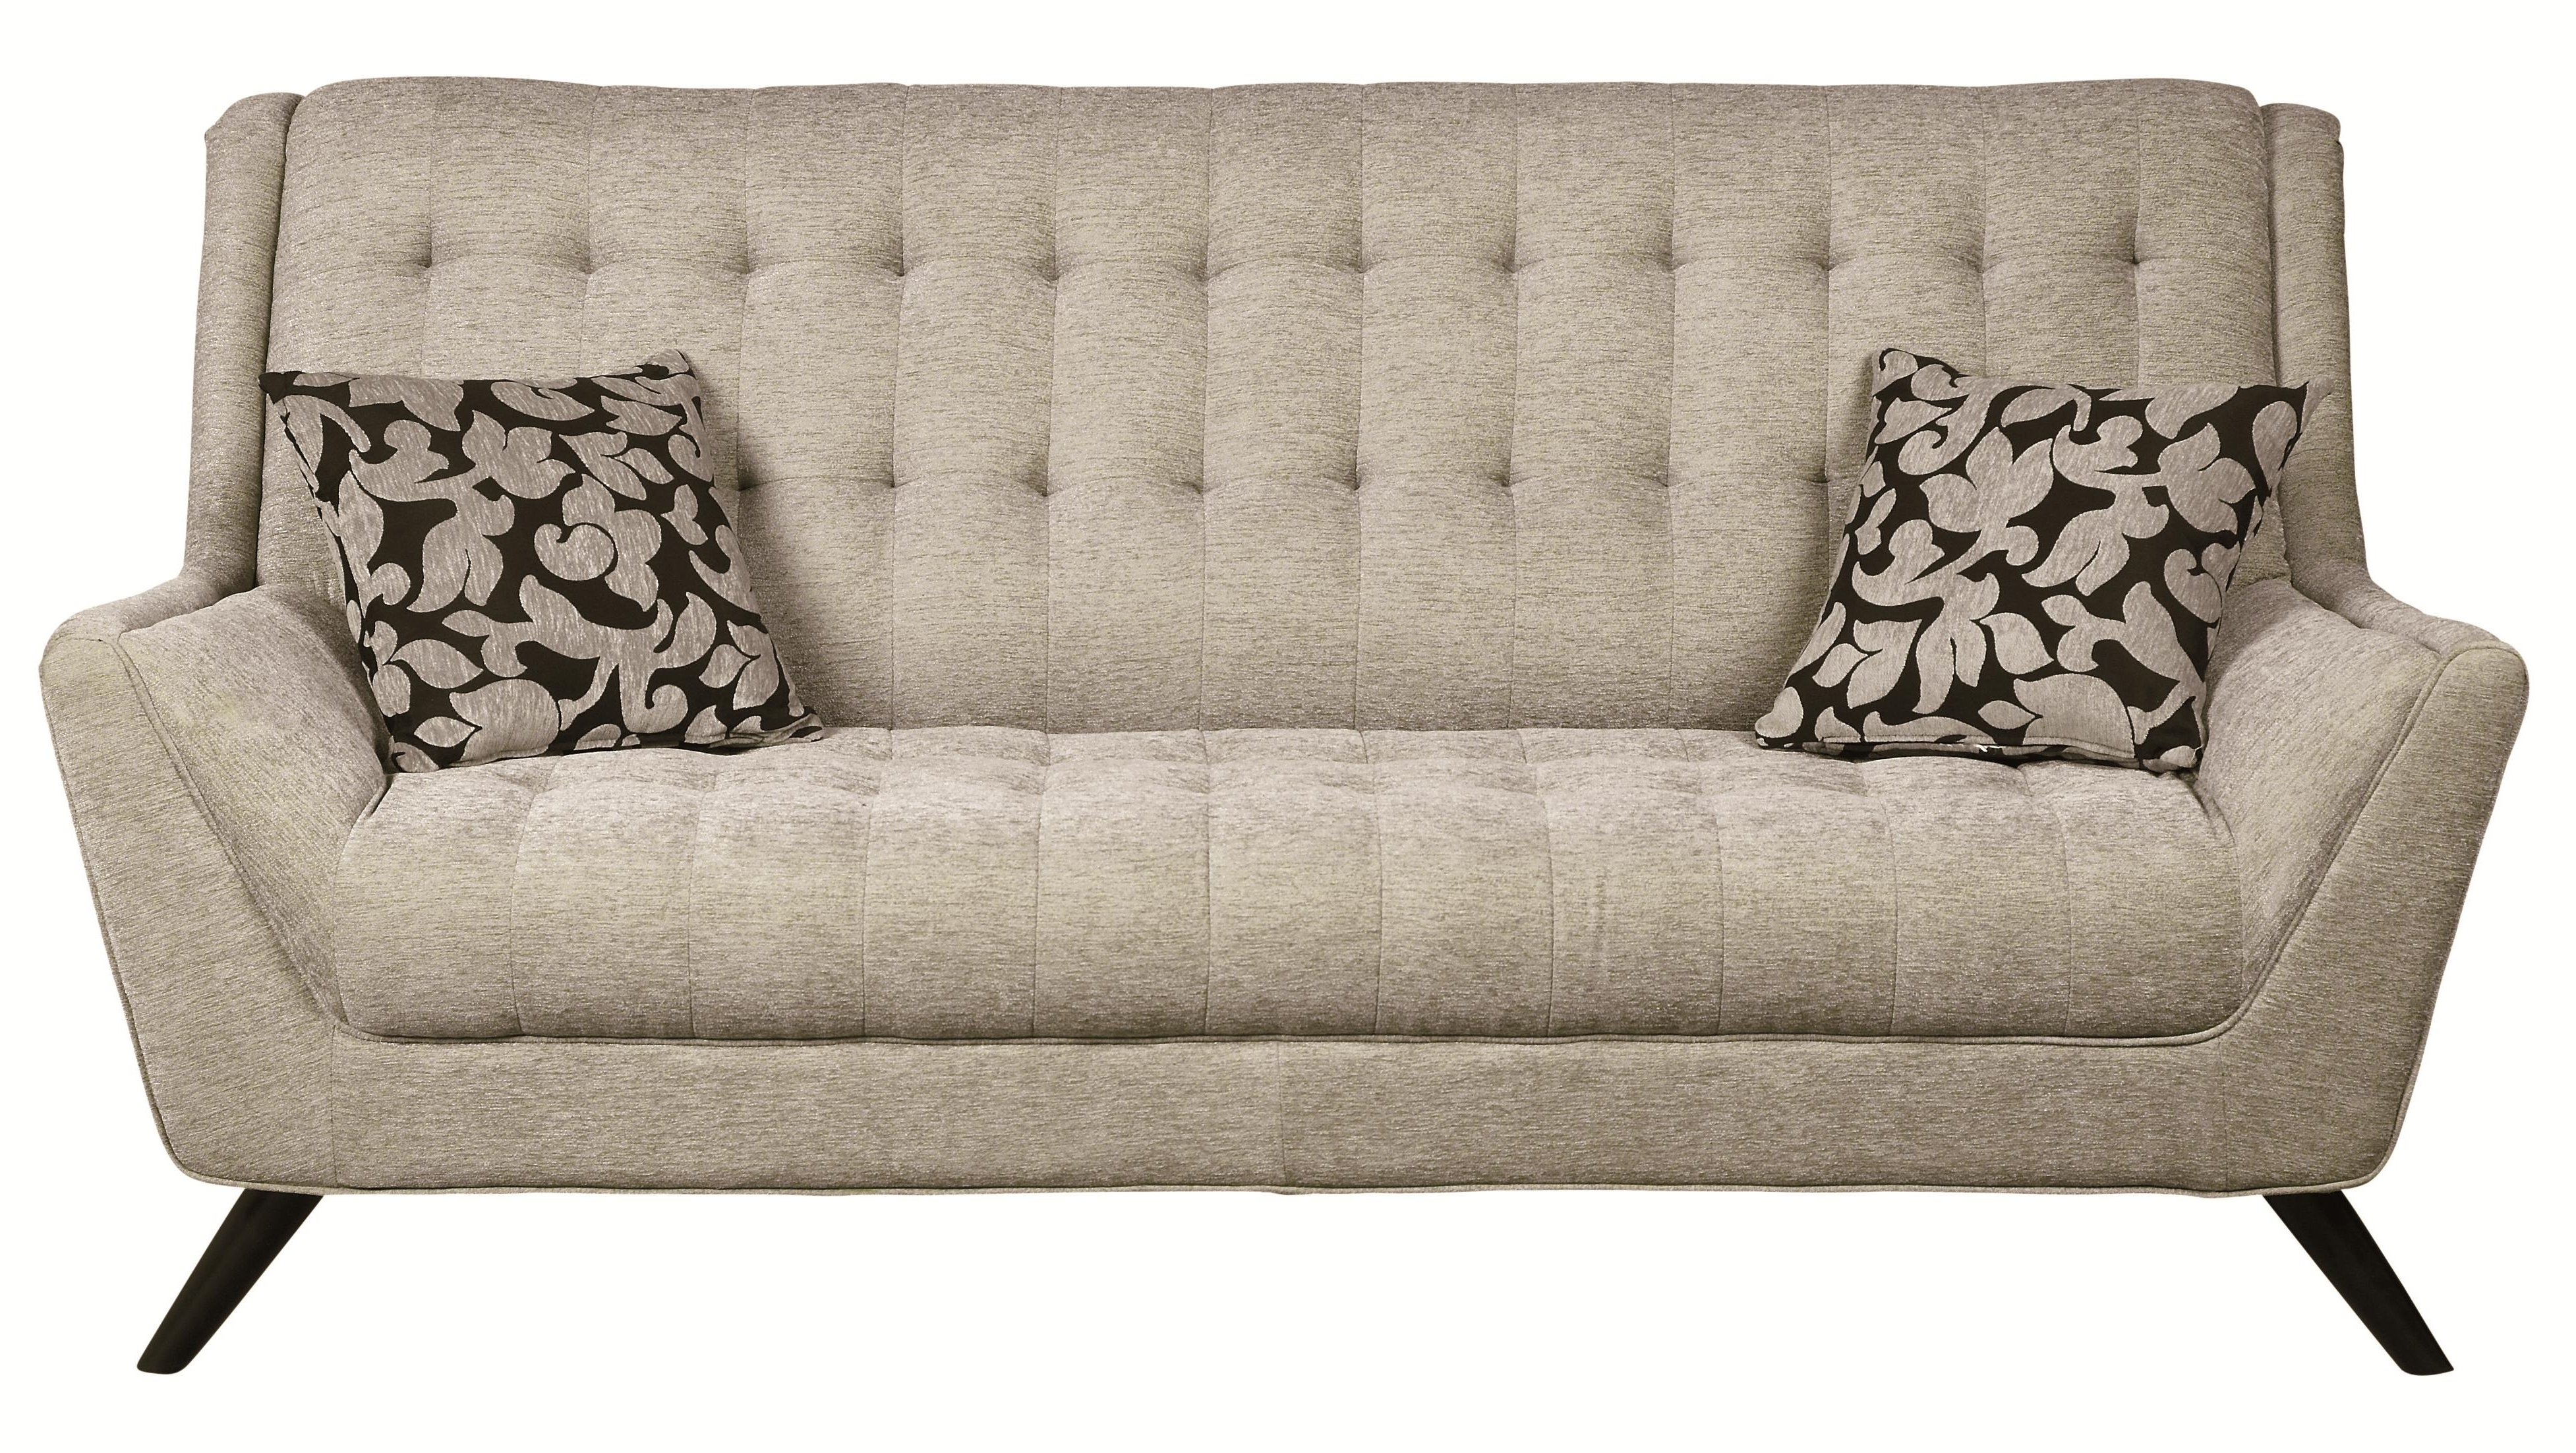 Latest Retro Sofas Throughout Coaster Natalia 503771 Retro Sofa W/ Flared Arms (View 8 of 20)